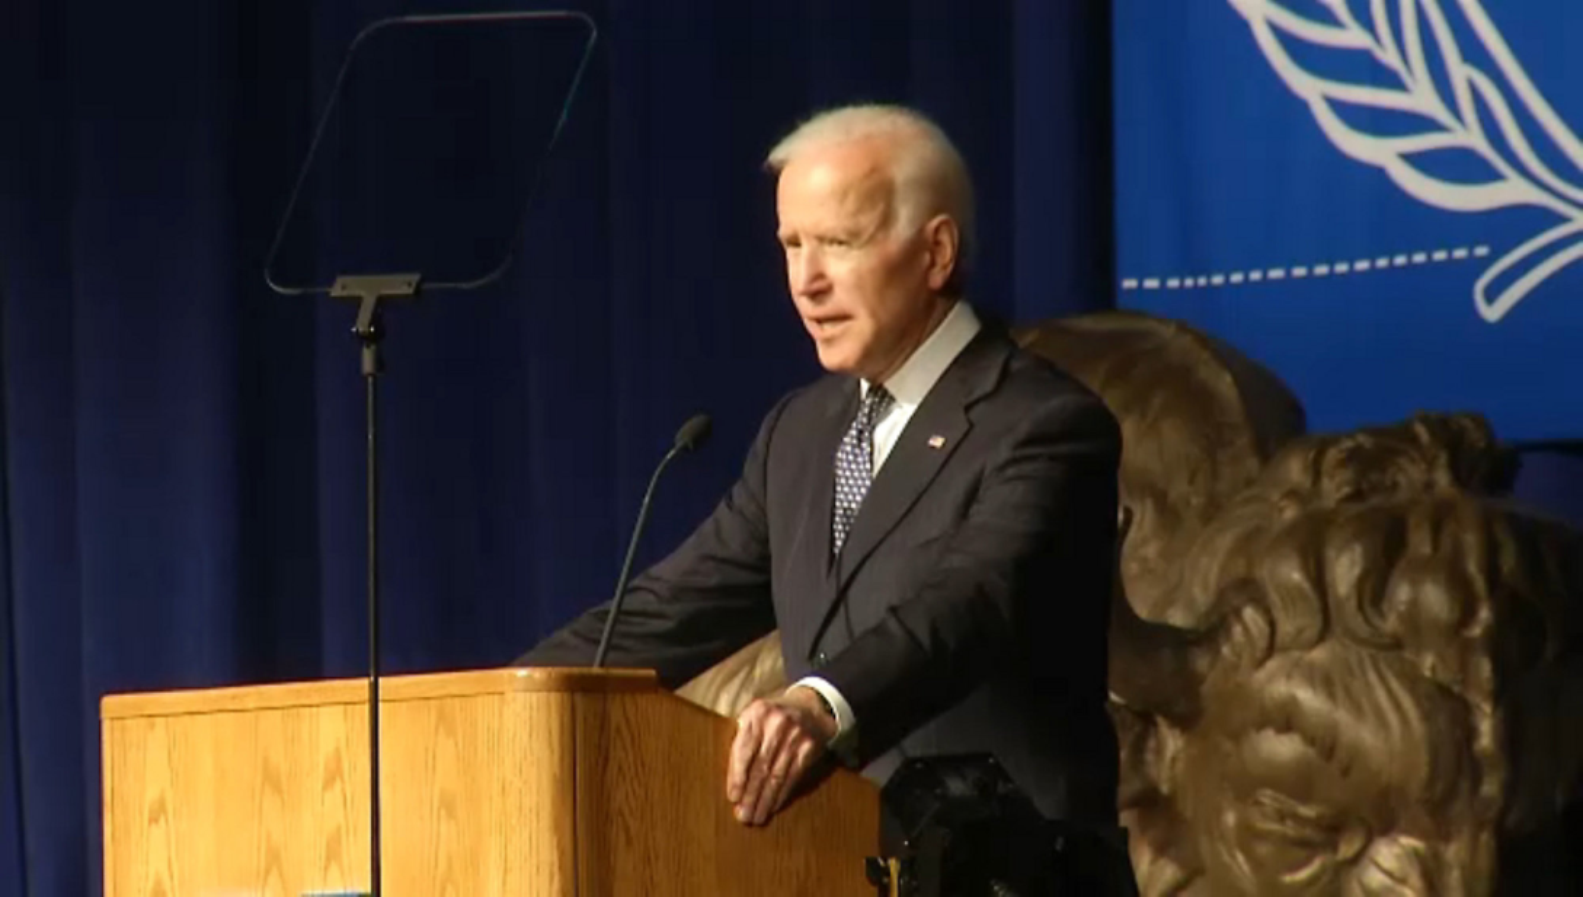 Joe Biden Kicks  off UB's 32nd Annual Distinguished Speakers Series